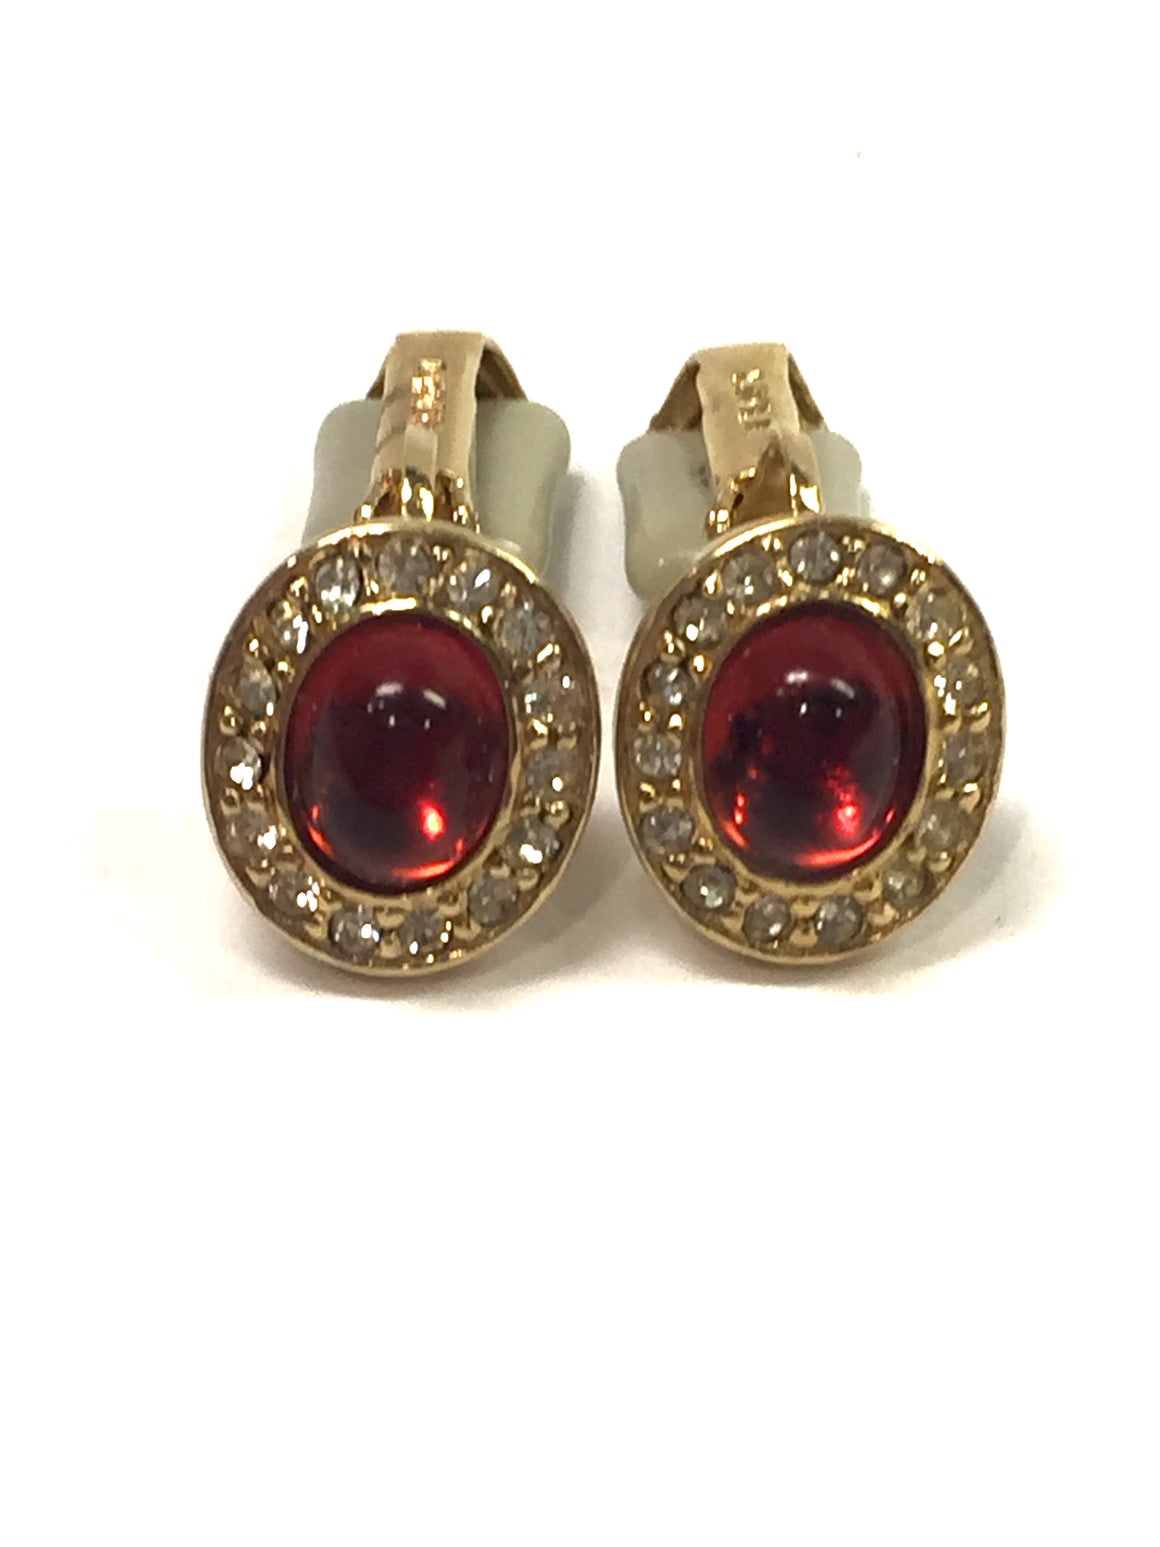 Vintage CINER Gilt Metal Red Cabochon Center Crystal Trim Clip-On Earrings